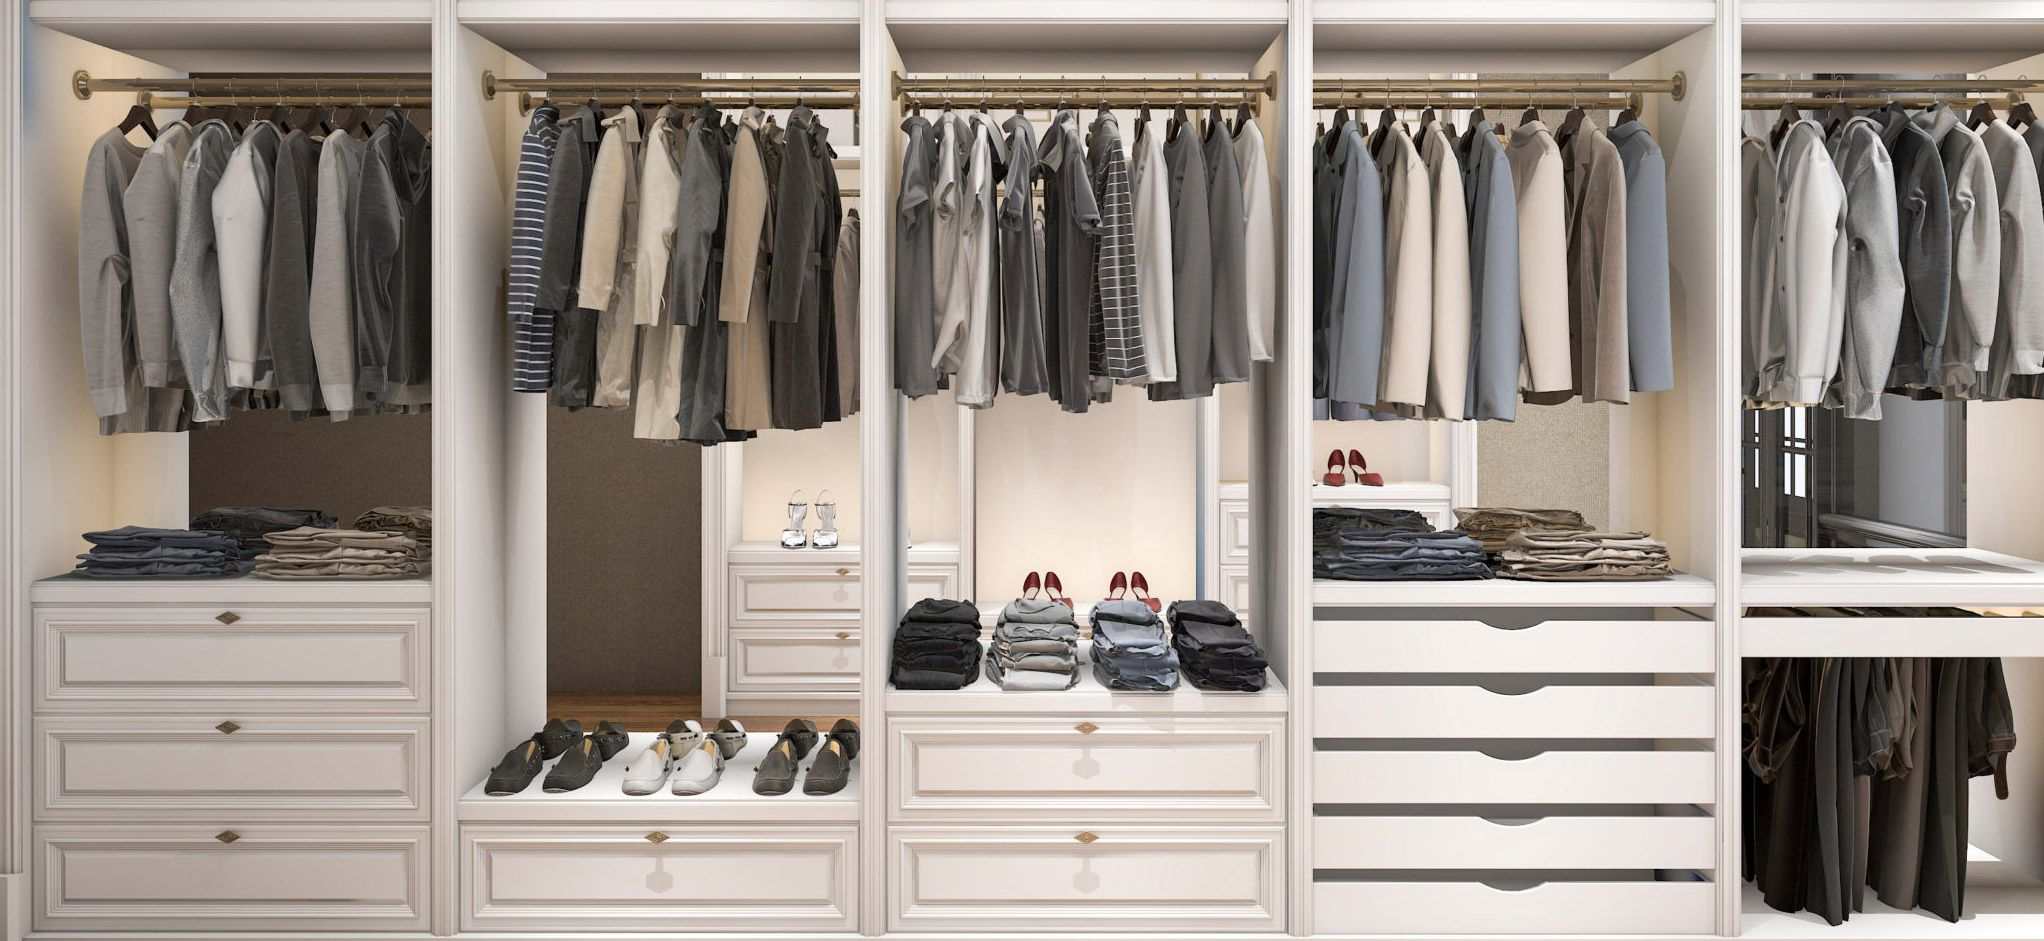 Most People Find Our Custom Built Wardrobes To Be Great For